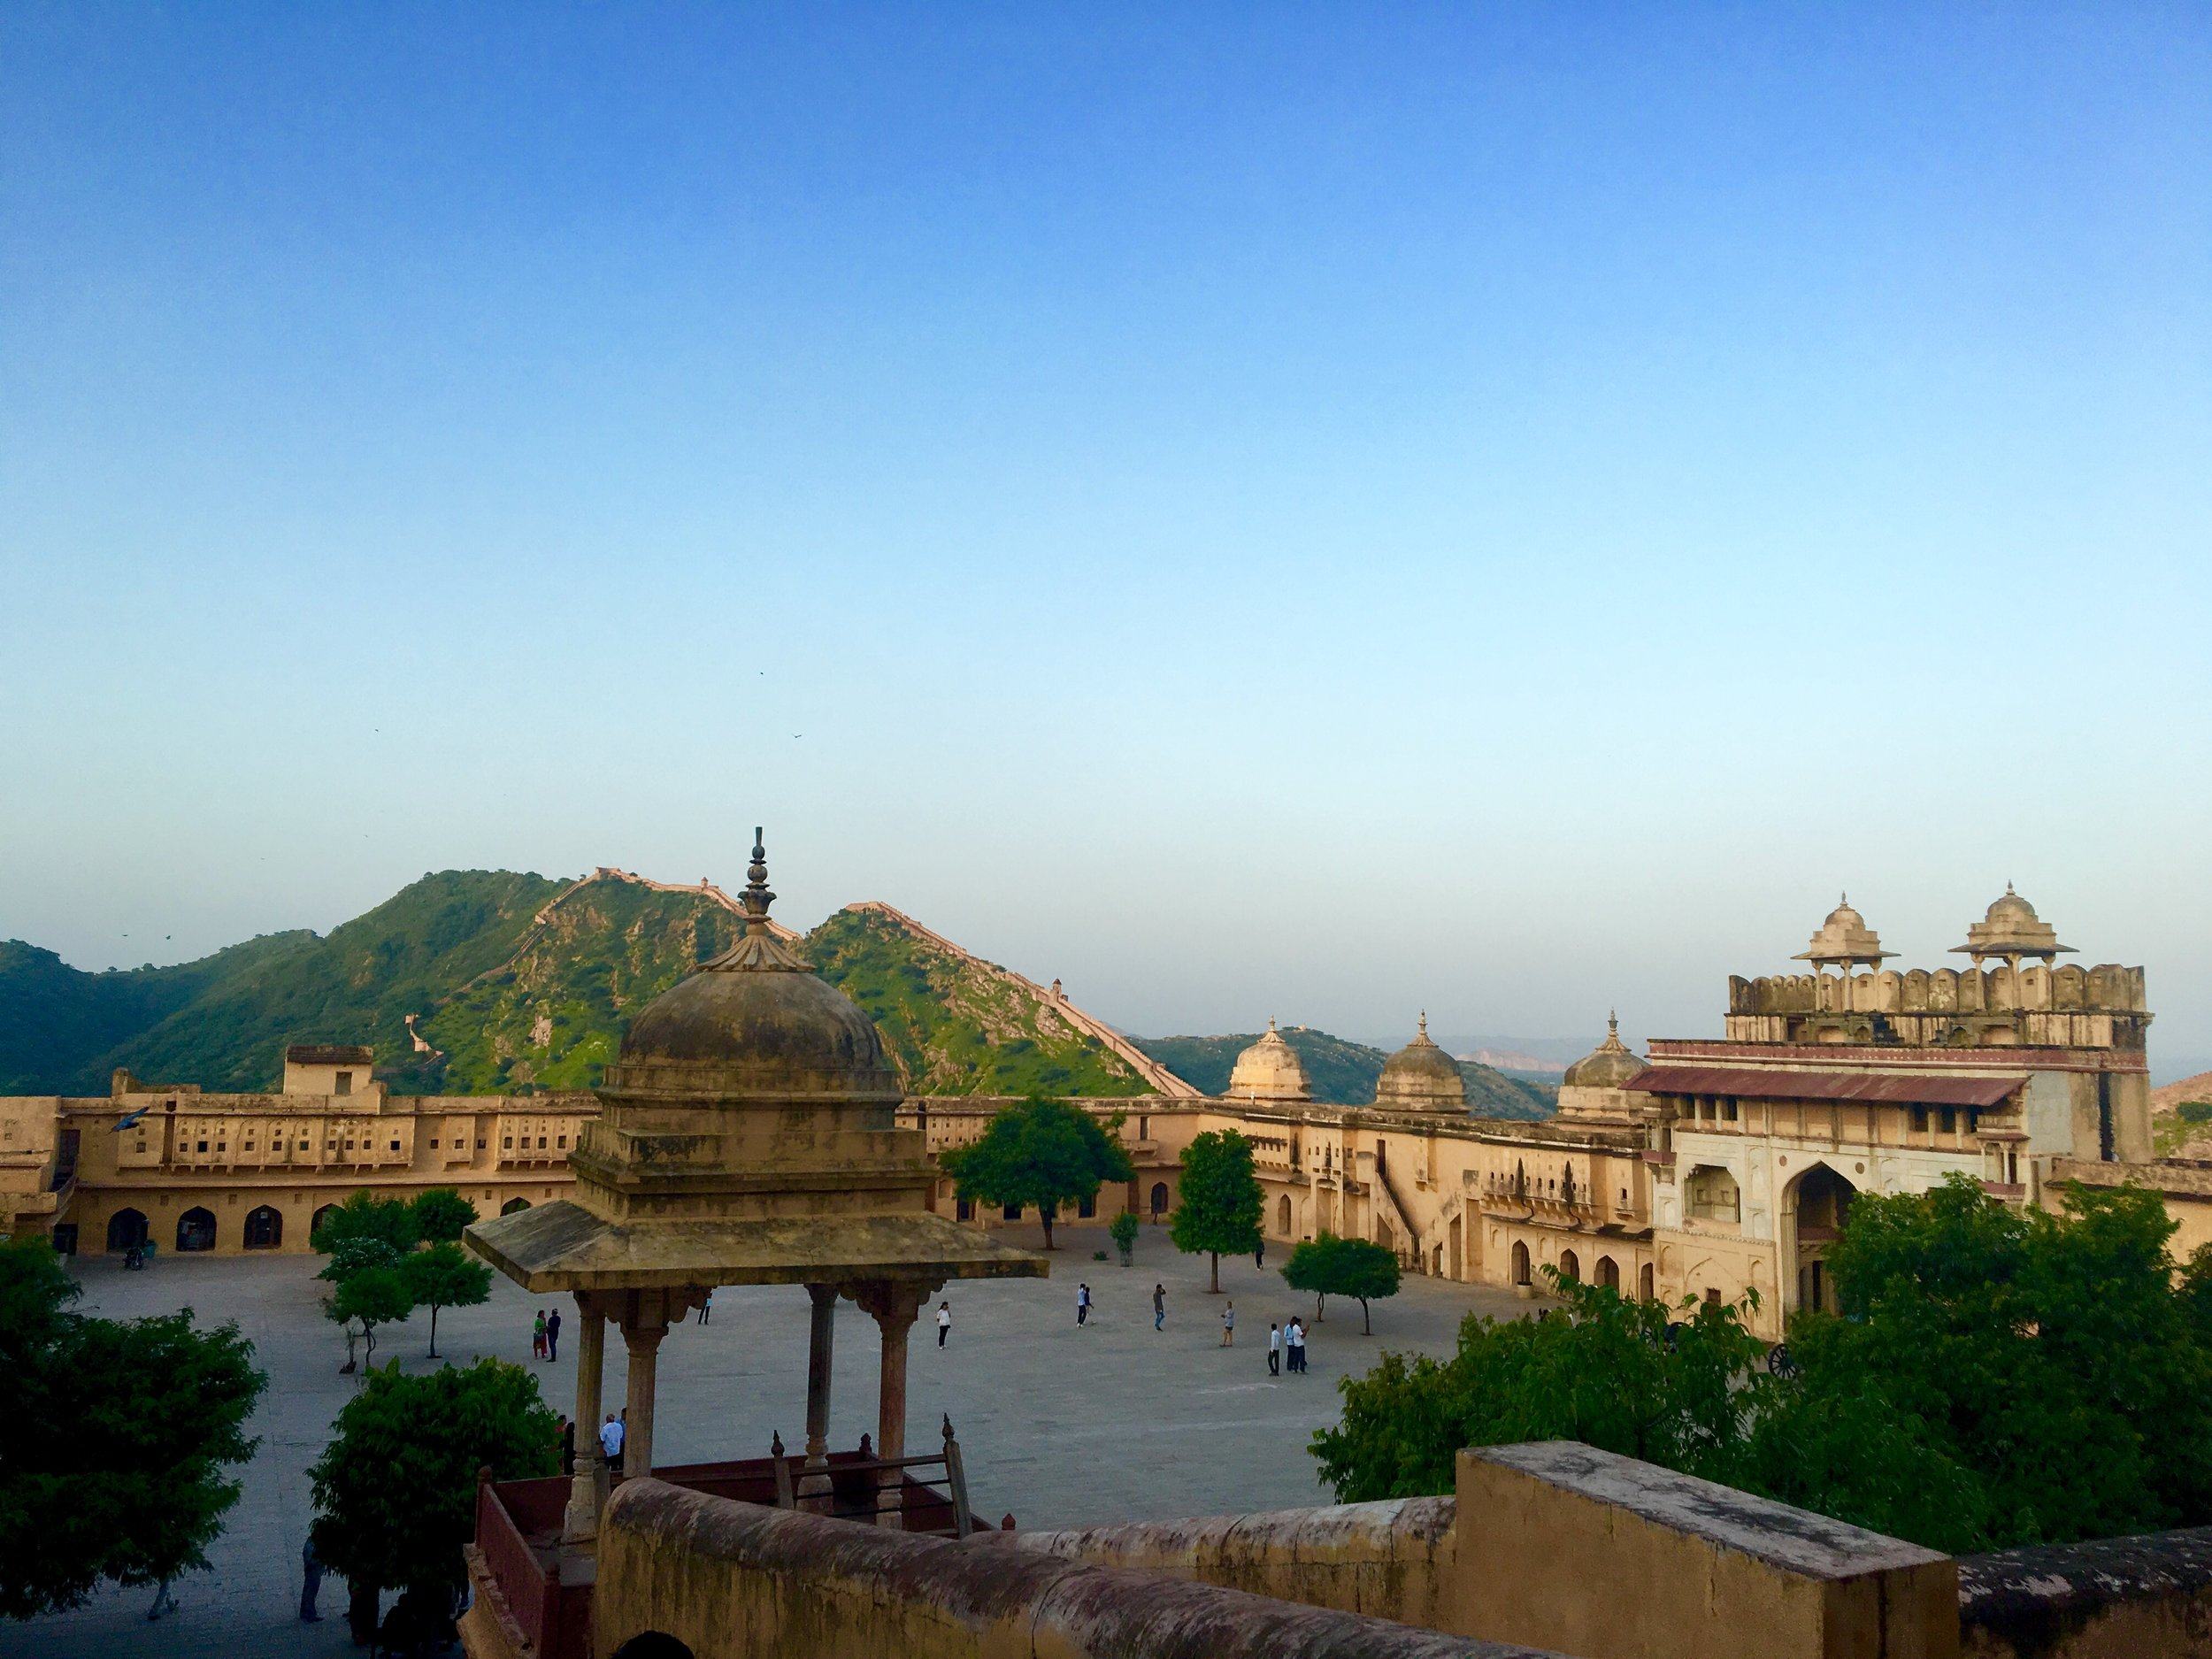 The dominant structure of the history of the city, Amer Fort/Amber Palace is a adjoined to Jaigarh Fort, both built on the hills around Jaipur and providing a panoramic view of the city and any one coming in. This then was the military seat of the Maharaja of Rajasthan.